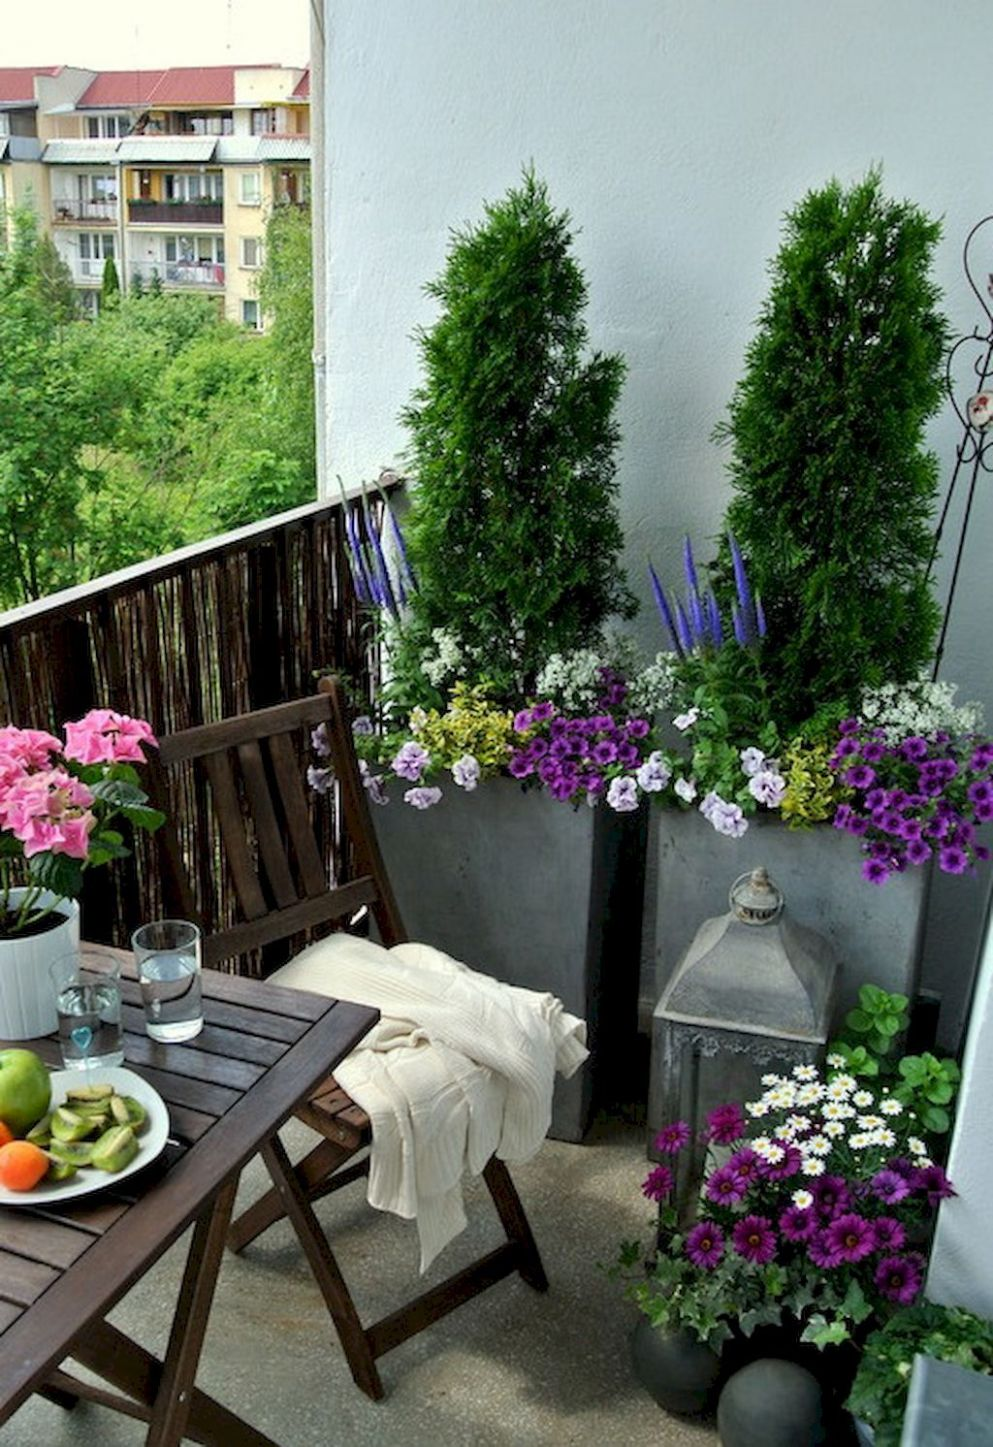 8 Small Apartment Balcony Decorating Ideas on A Budget (With ...